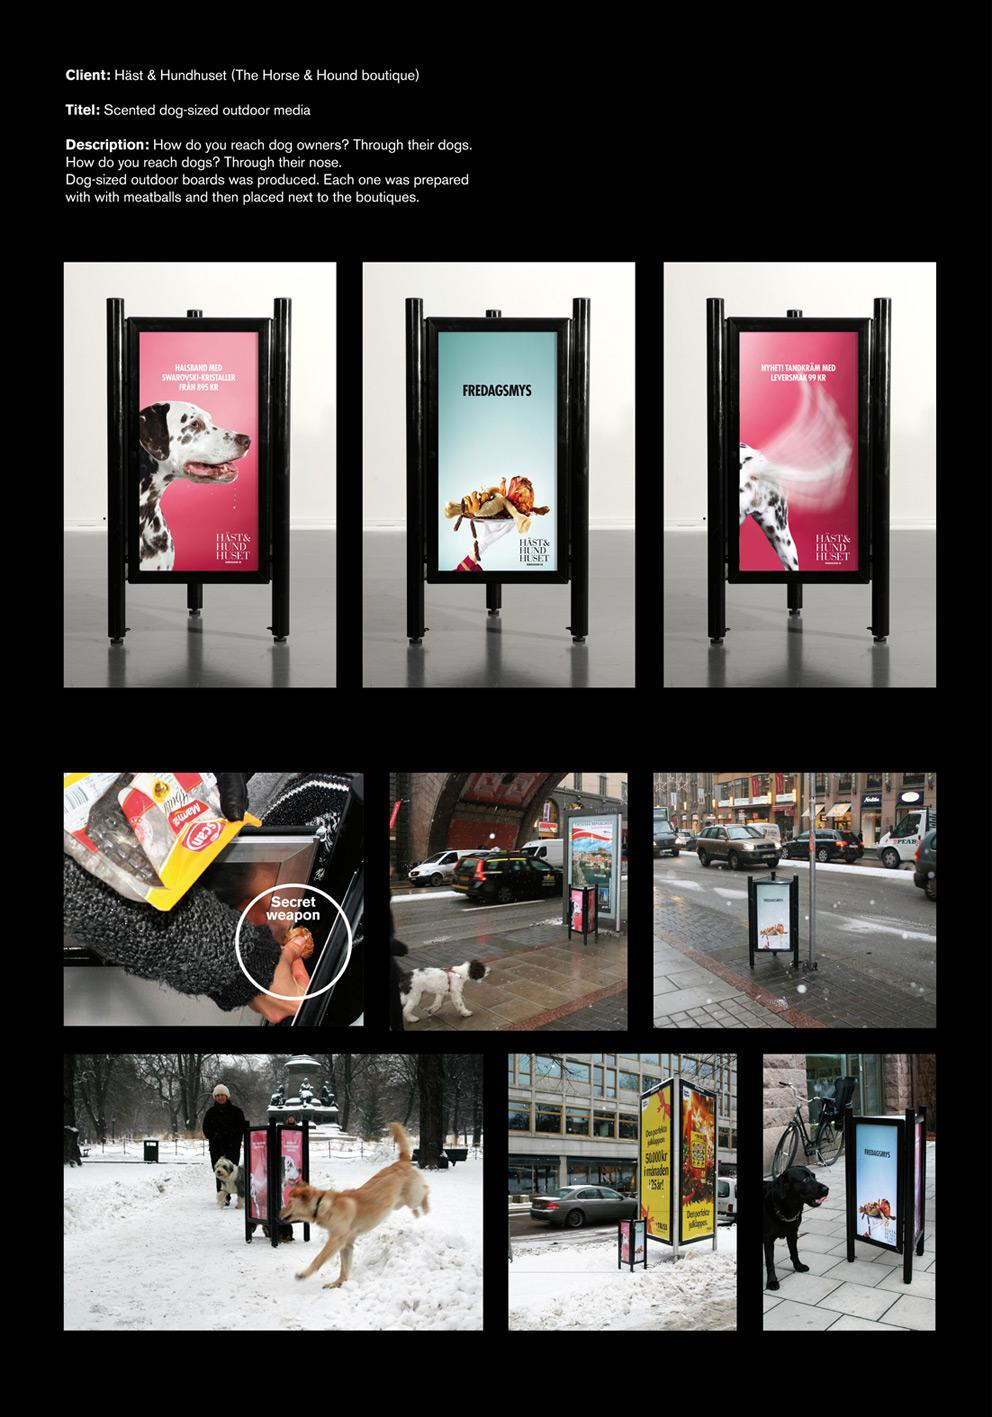 The Horse and Hound Boutique Ambient Ad -  Meatballs